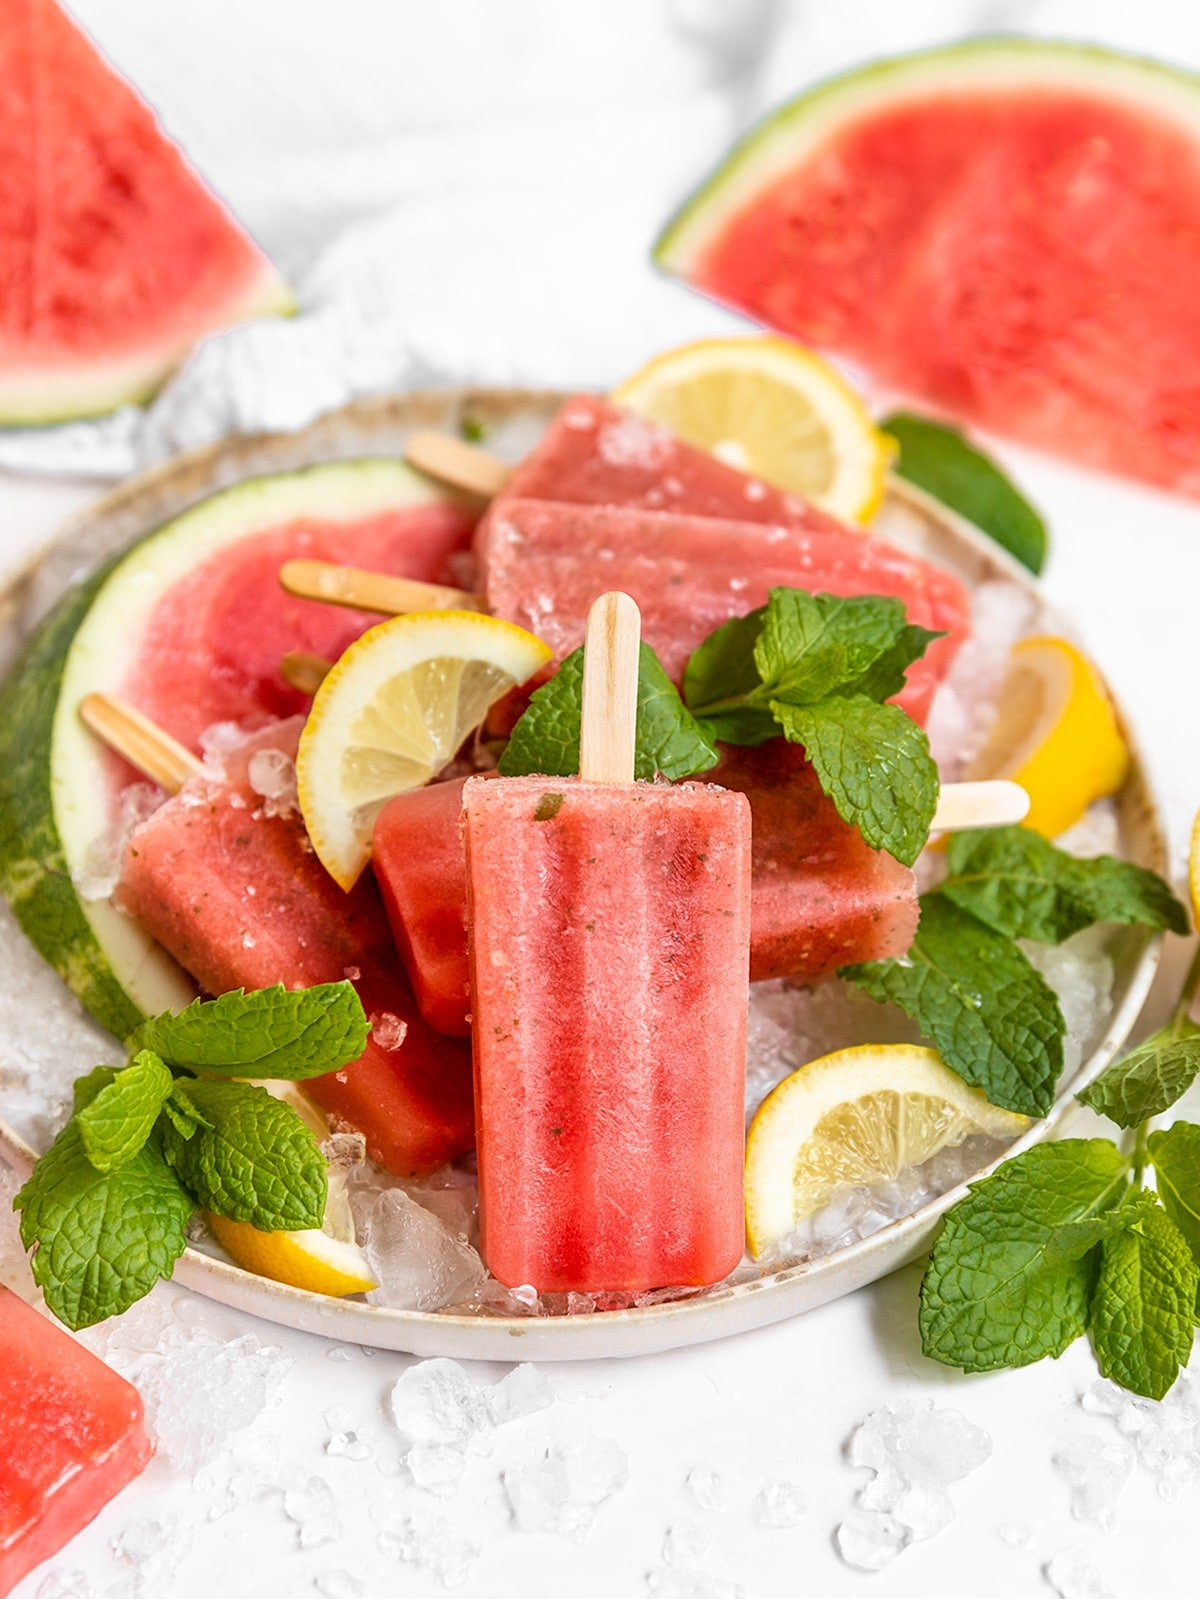 plate filled with watermelon popsicles, watermelon slices, fresh mint leaves, and lemon wedges surrounded by ice